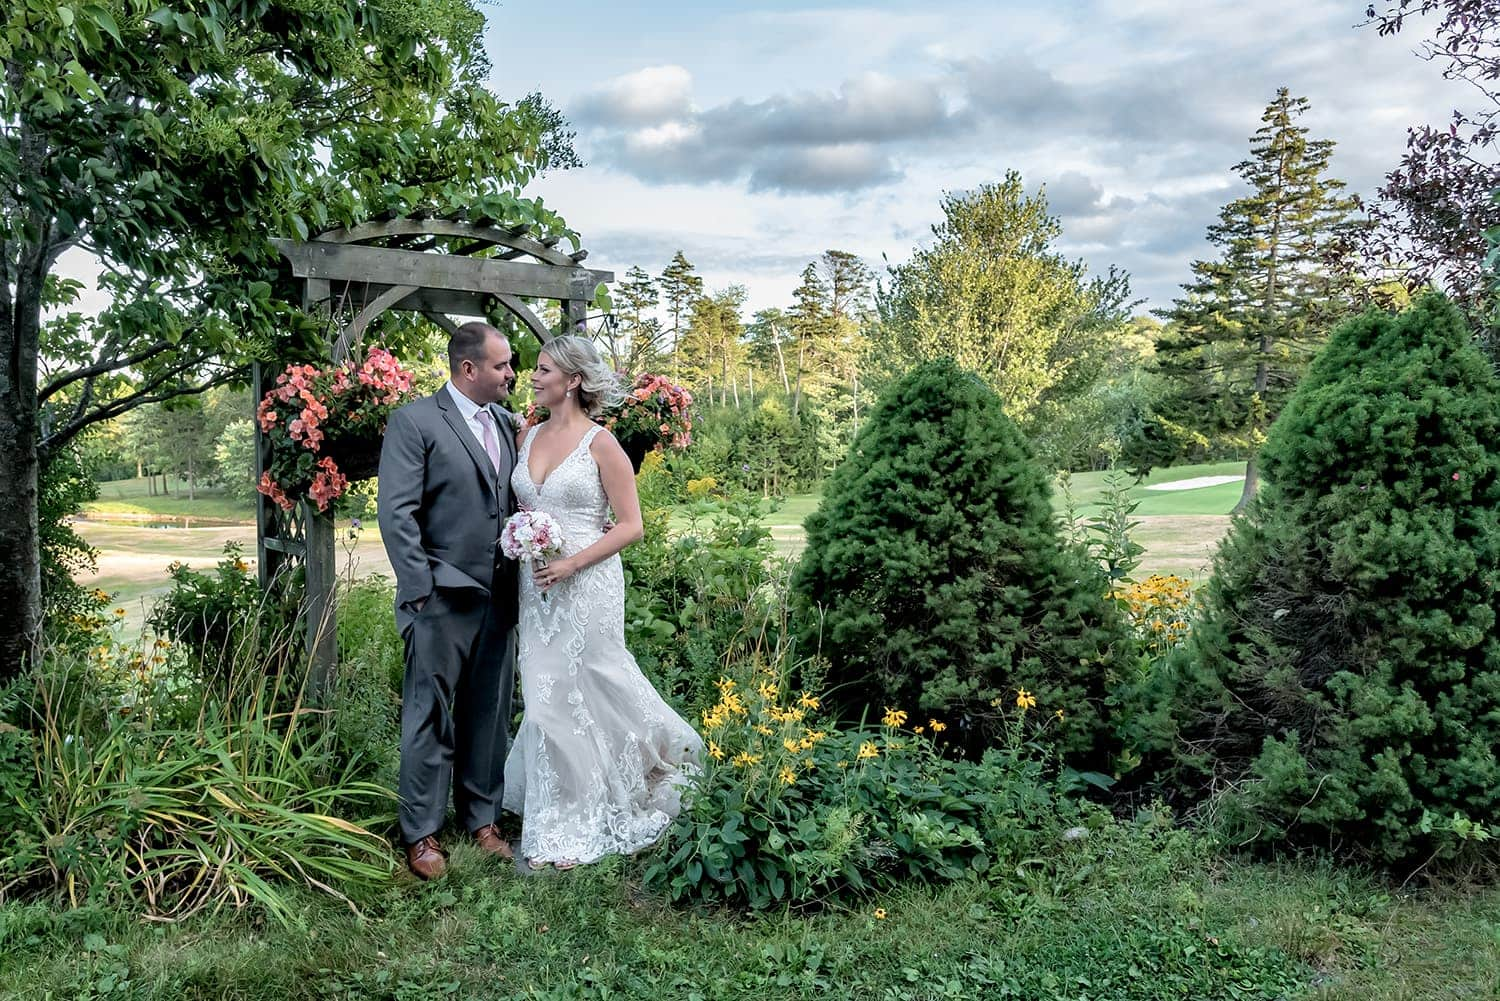 Halifax Wedding Photographer with bride and groom at Ashburn Golf Club Wedding.